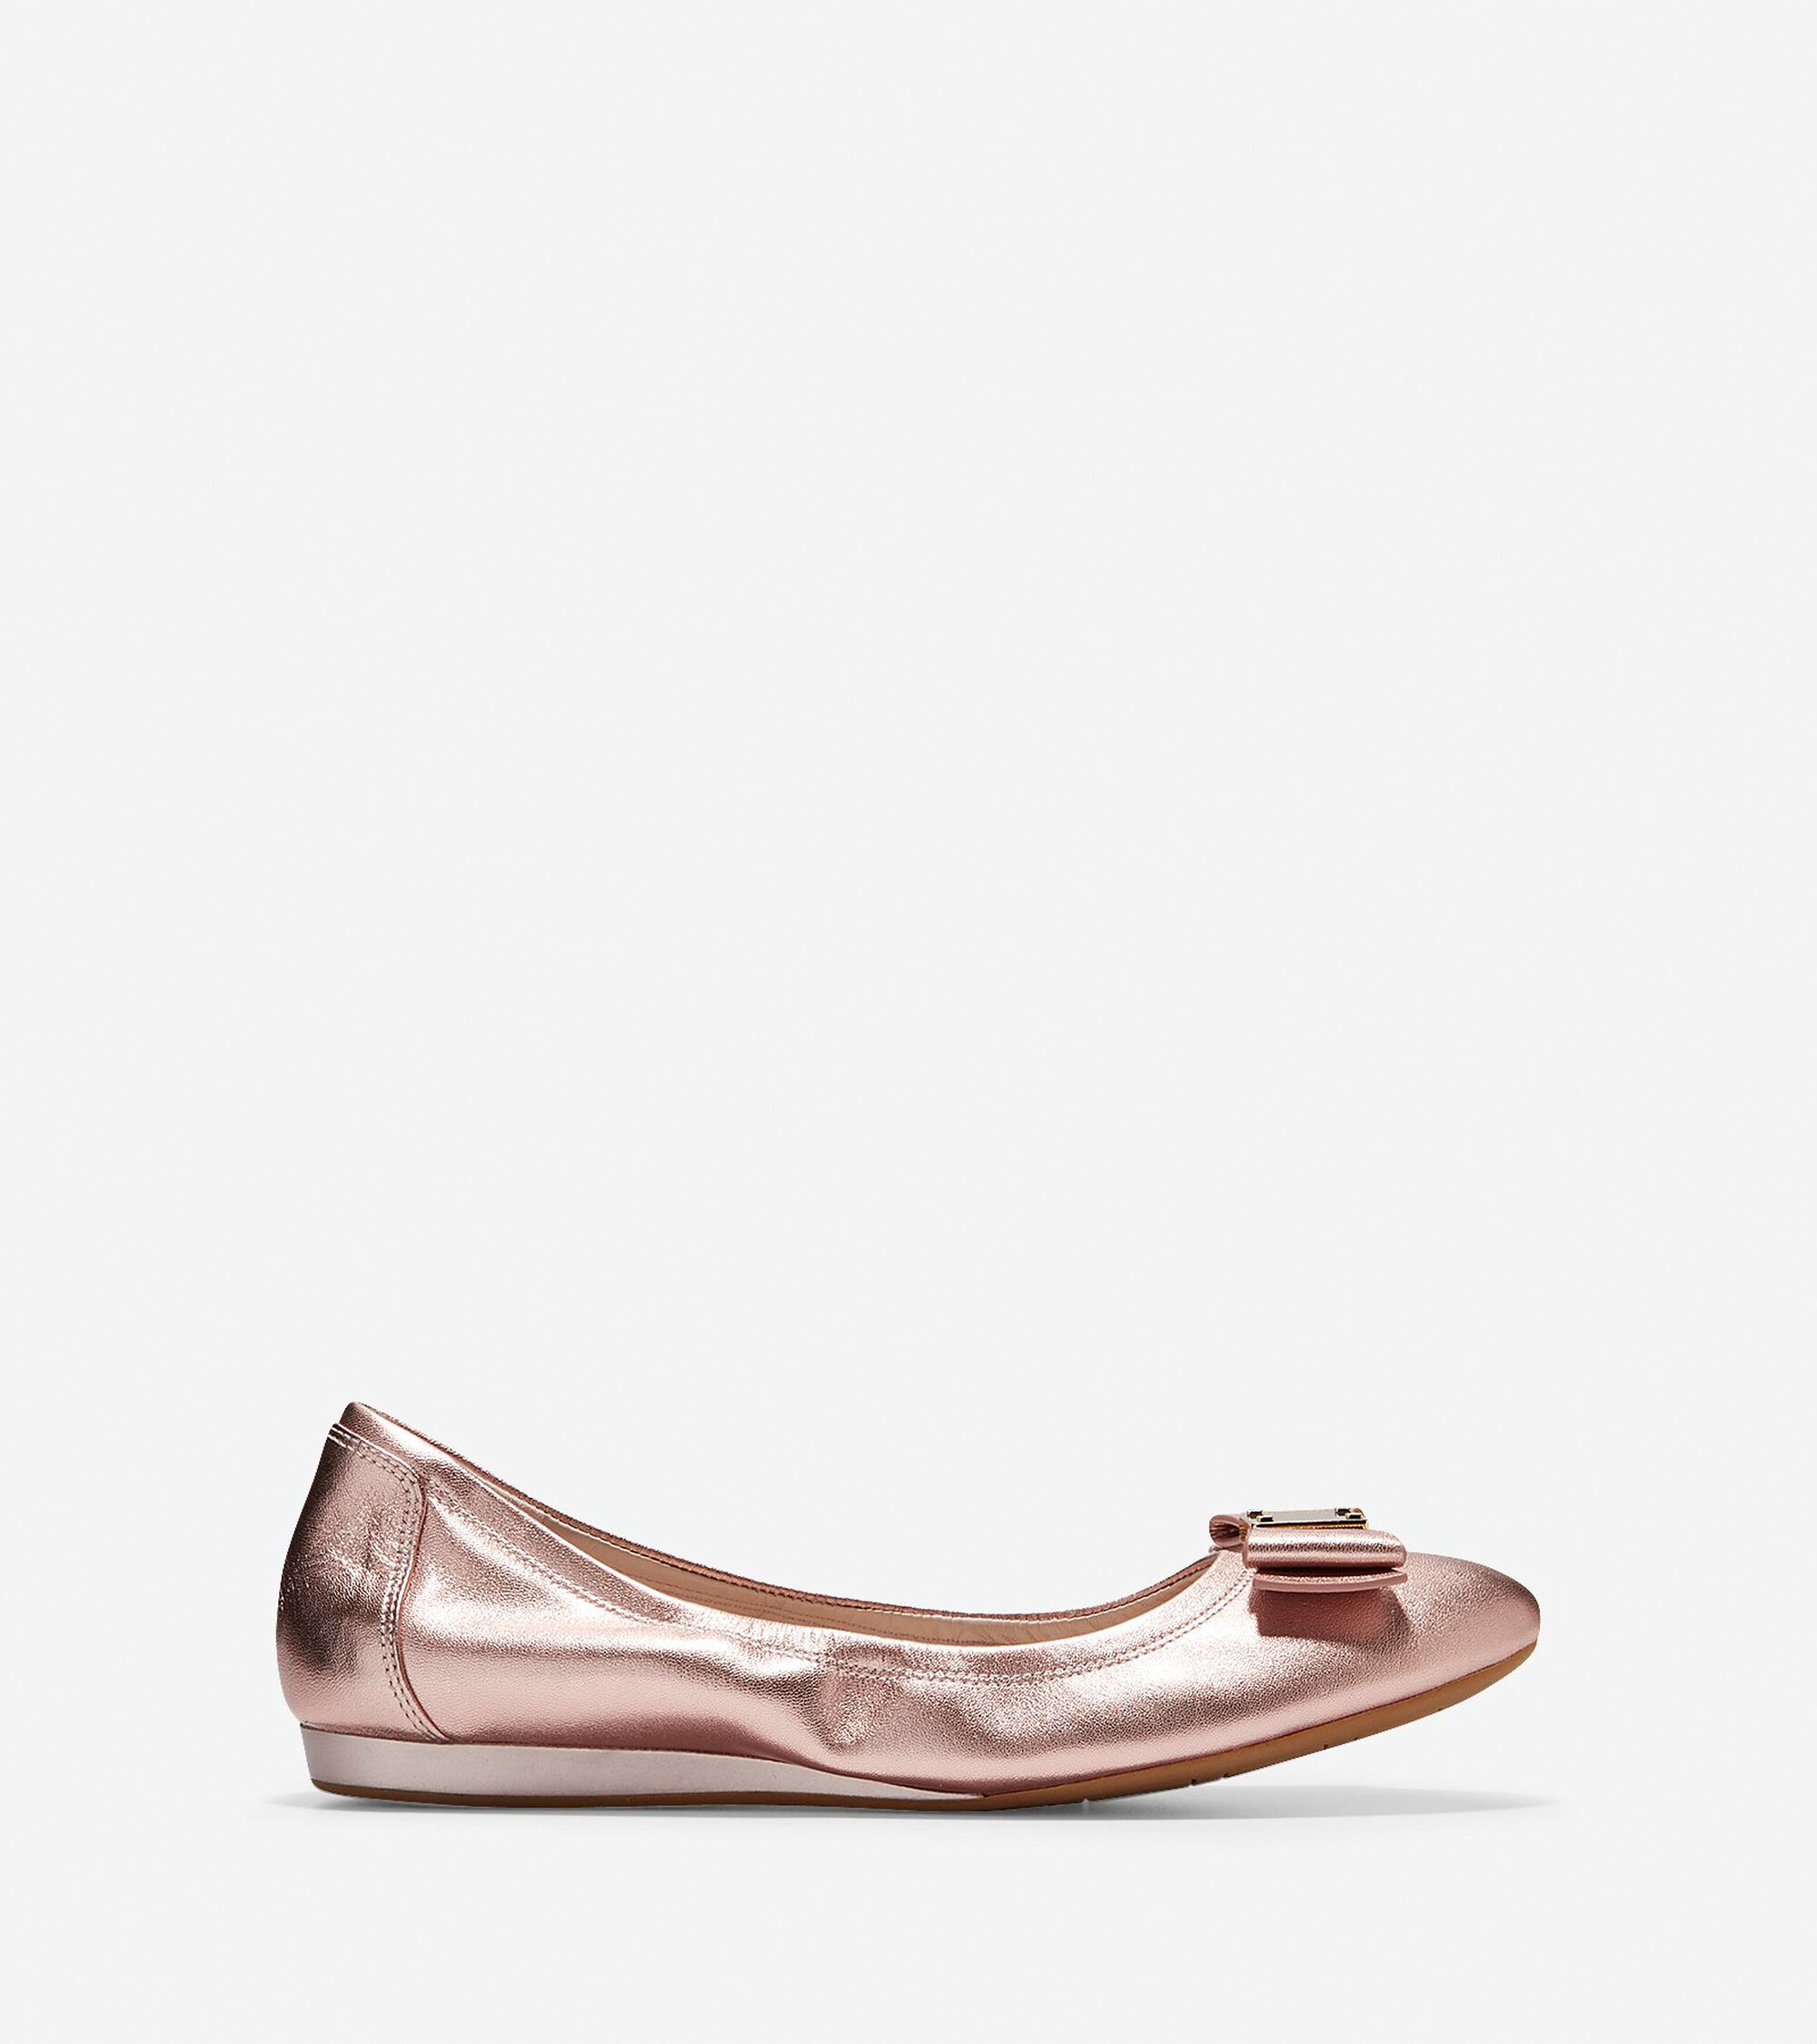 c6cecc0a8daf Womens Tali Bow Ballet Flats in Rose Gold